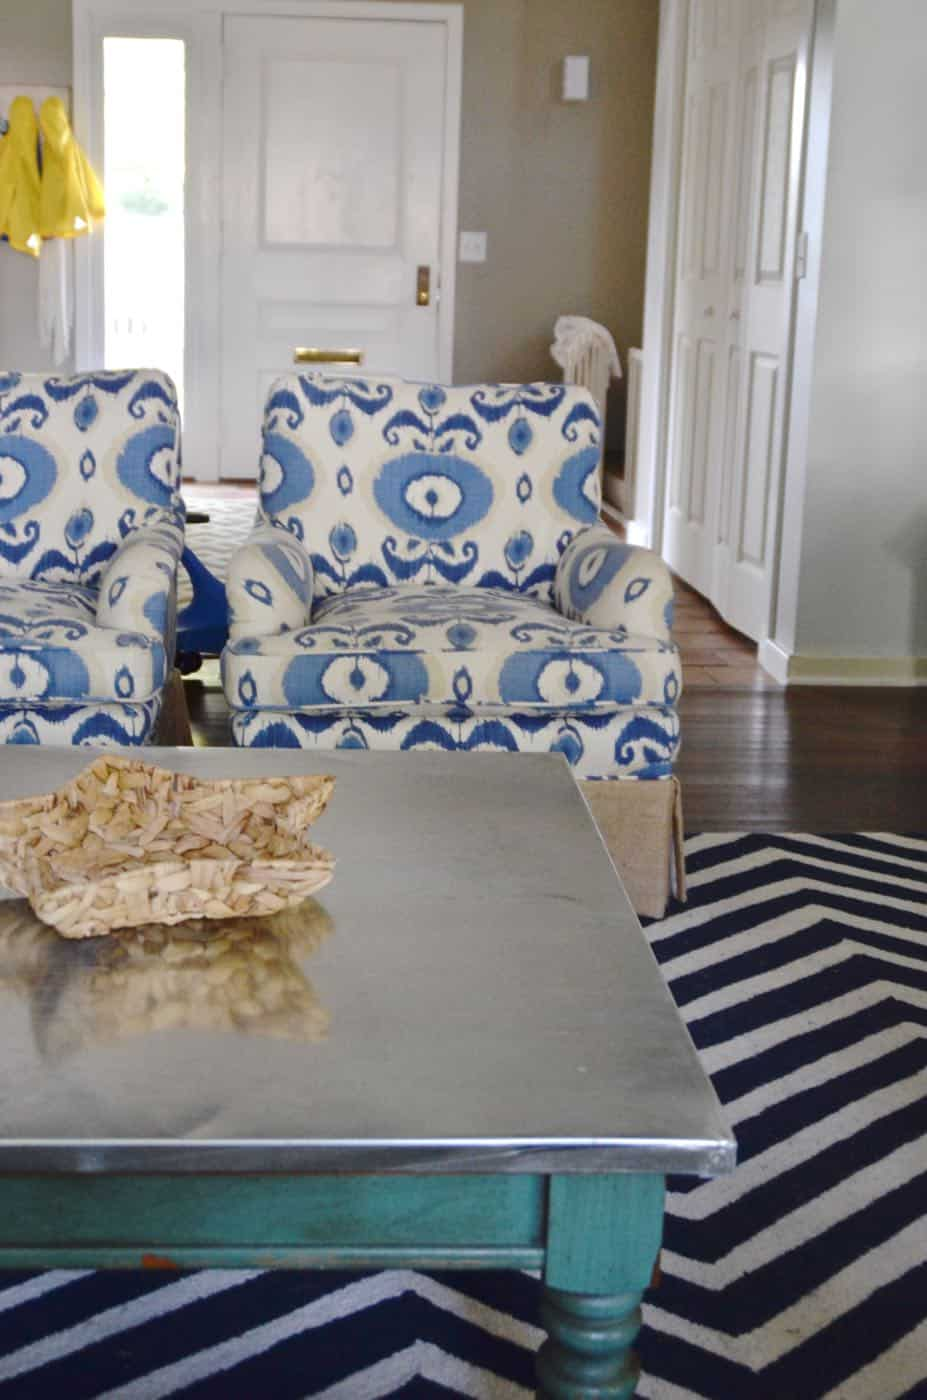 Adding an inexpensive stainless steel looking topper to any coffee table.